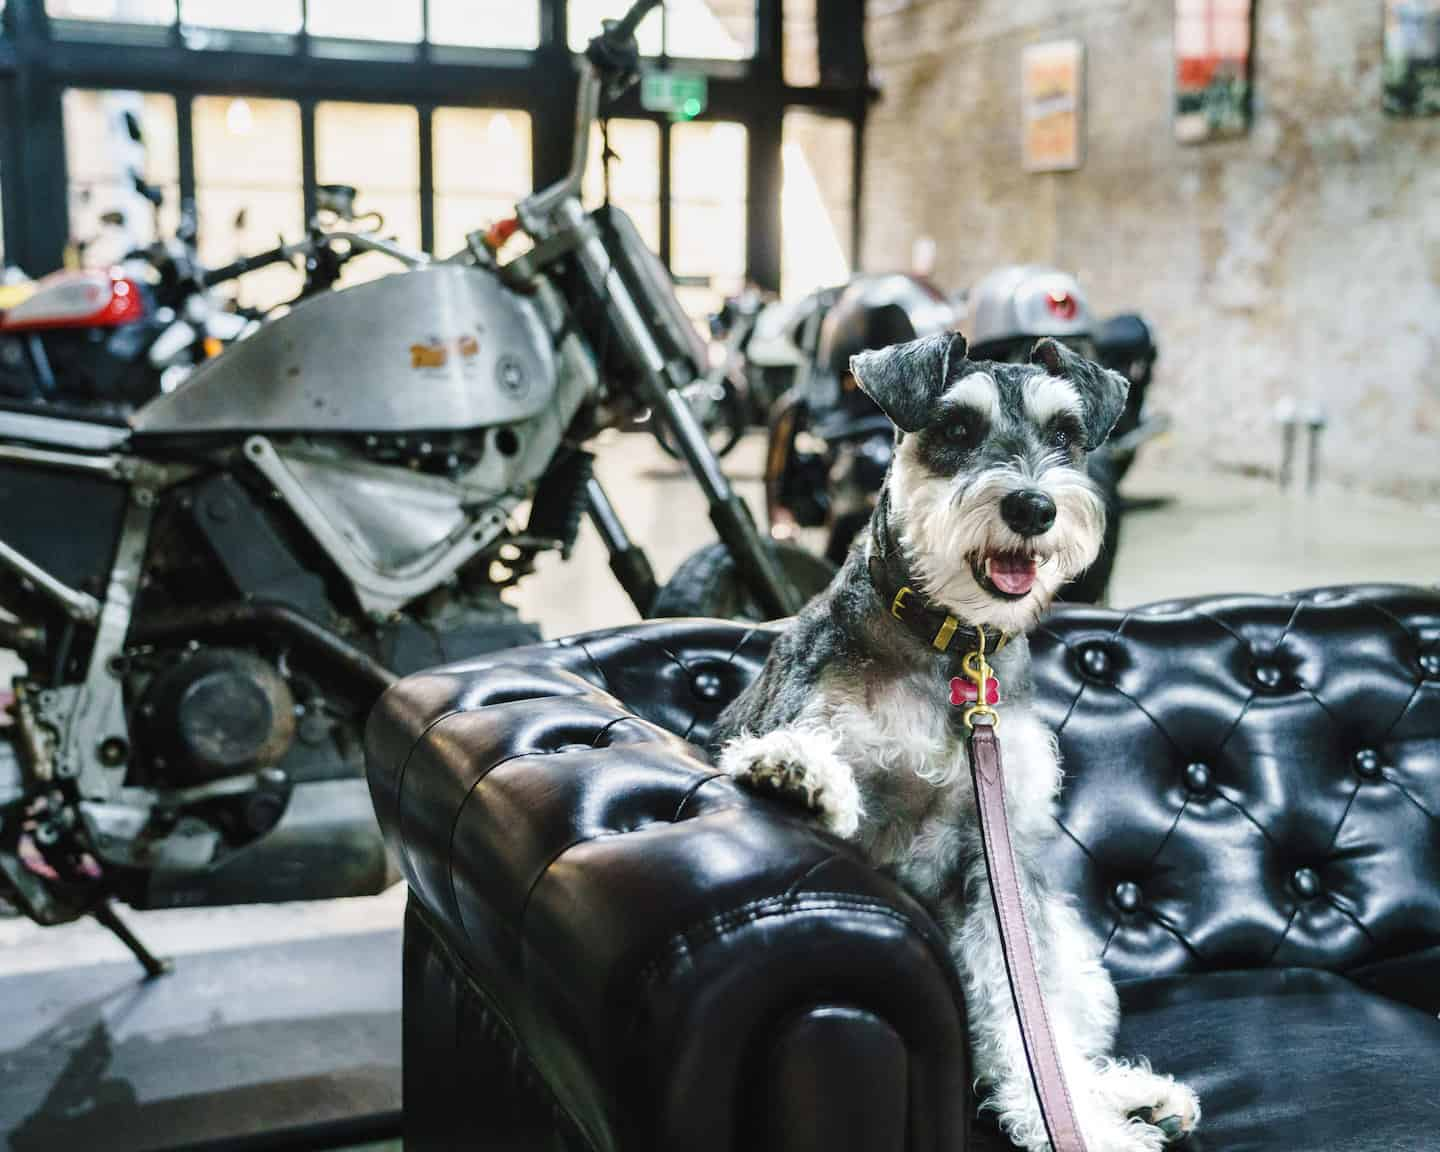 My Dog Friendly London By Rusty Red The Schnauzer | Dog Friendly Shoreditch and Hoxton Bike Shed 4